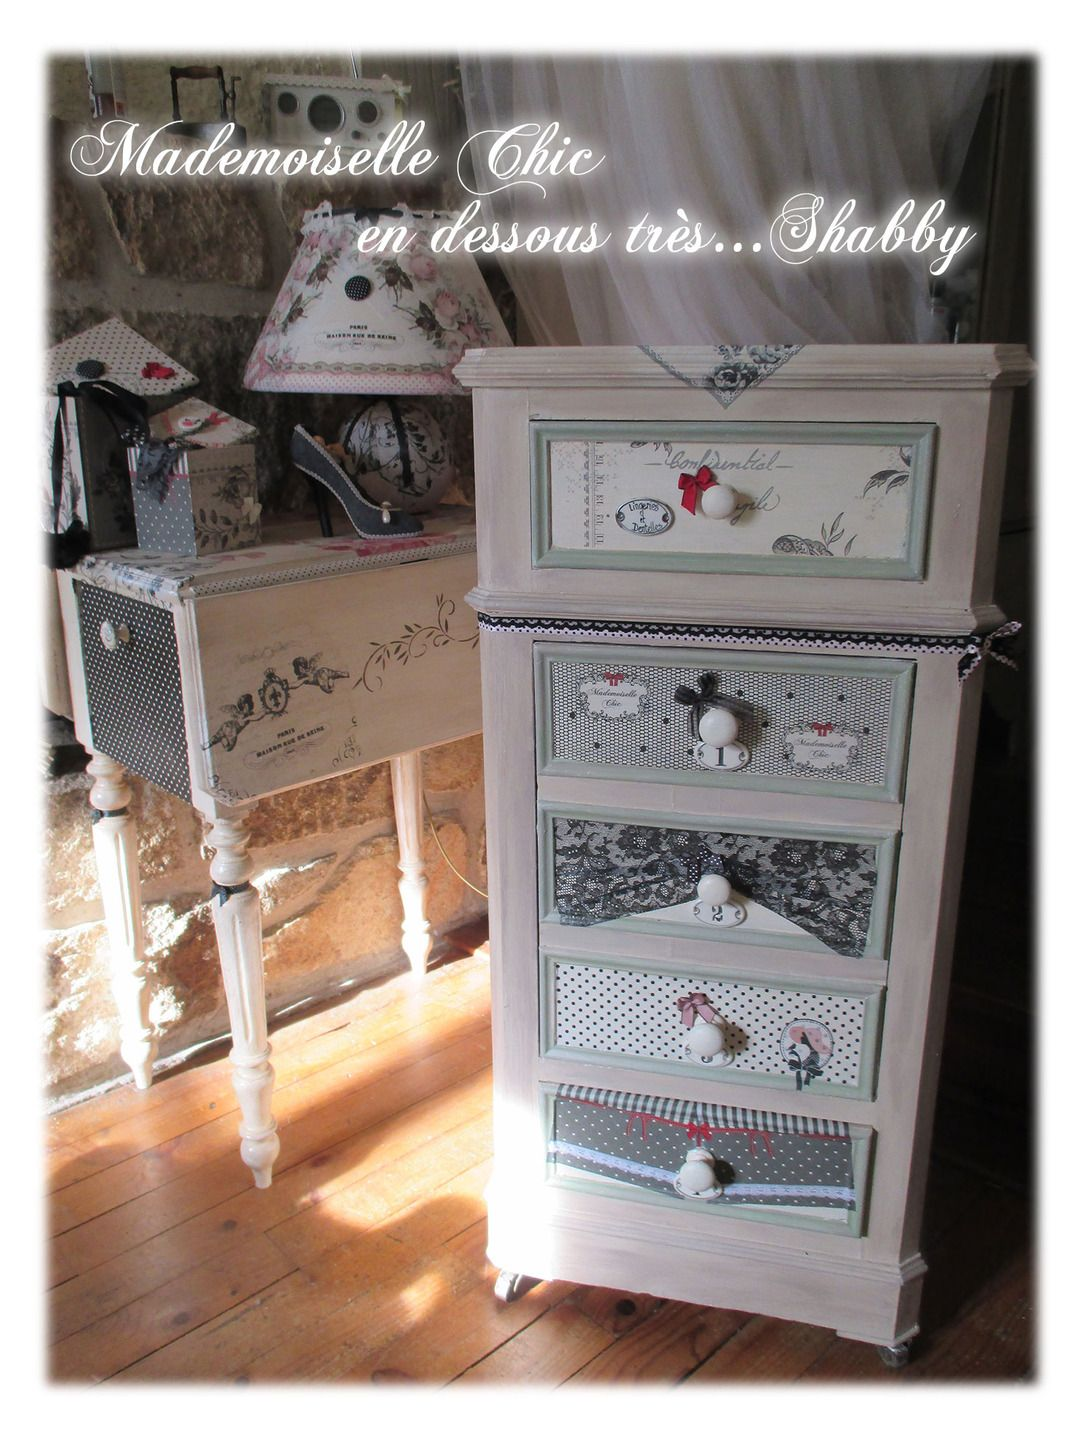 chiffonnier ancien mademoiselle chic secrets et r verie tr s shabby meubles et. Black Bedroom Furniture Sets. Home Design Ideas